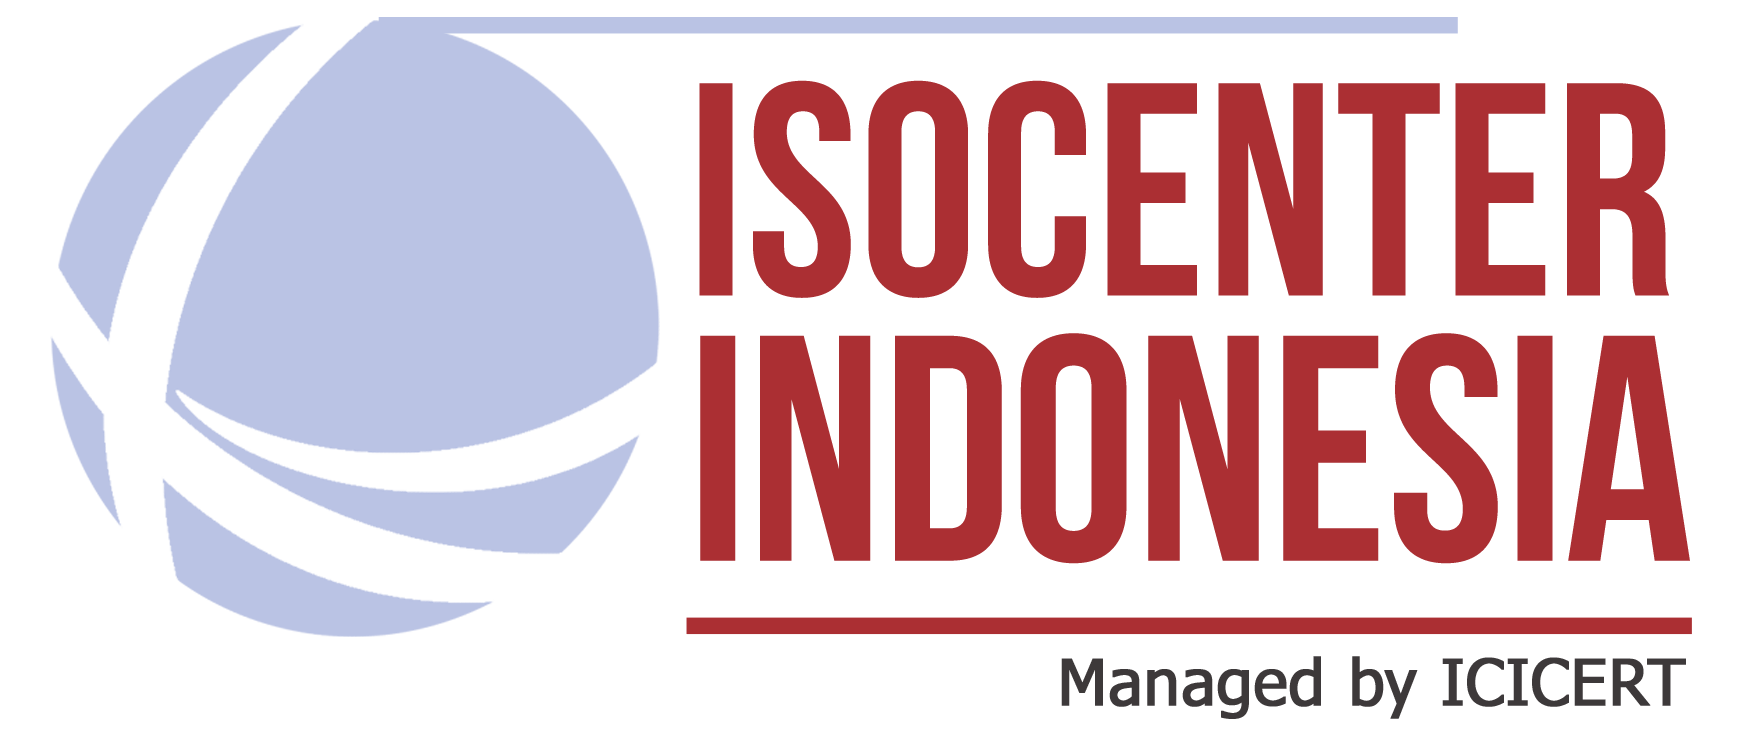 ISO CENTER INDONESIA